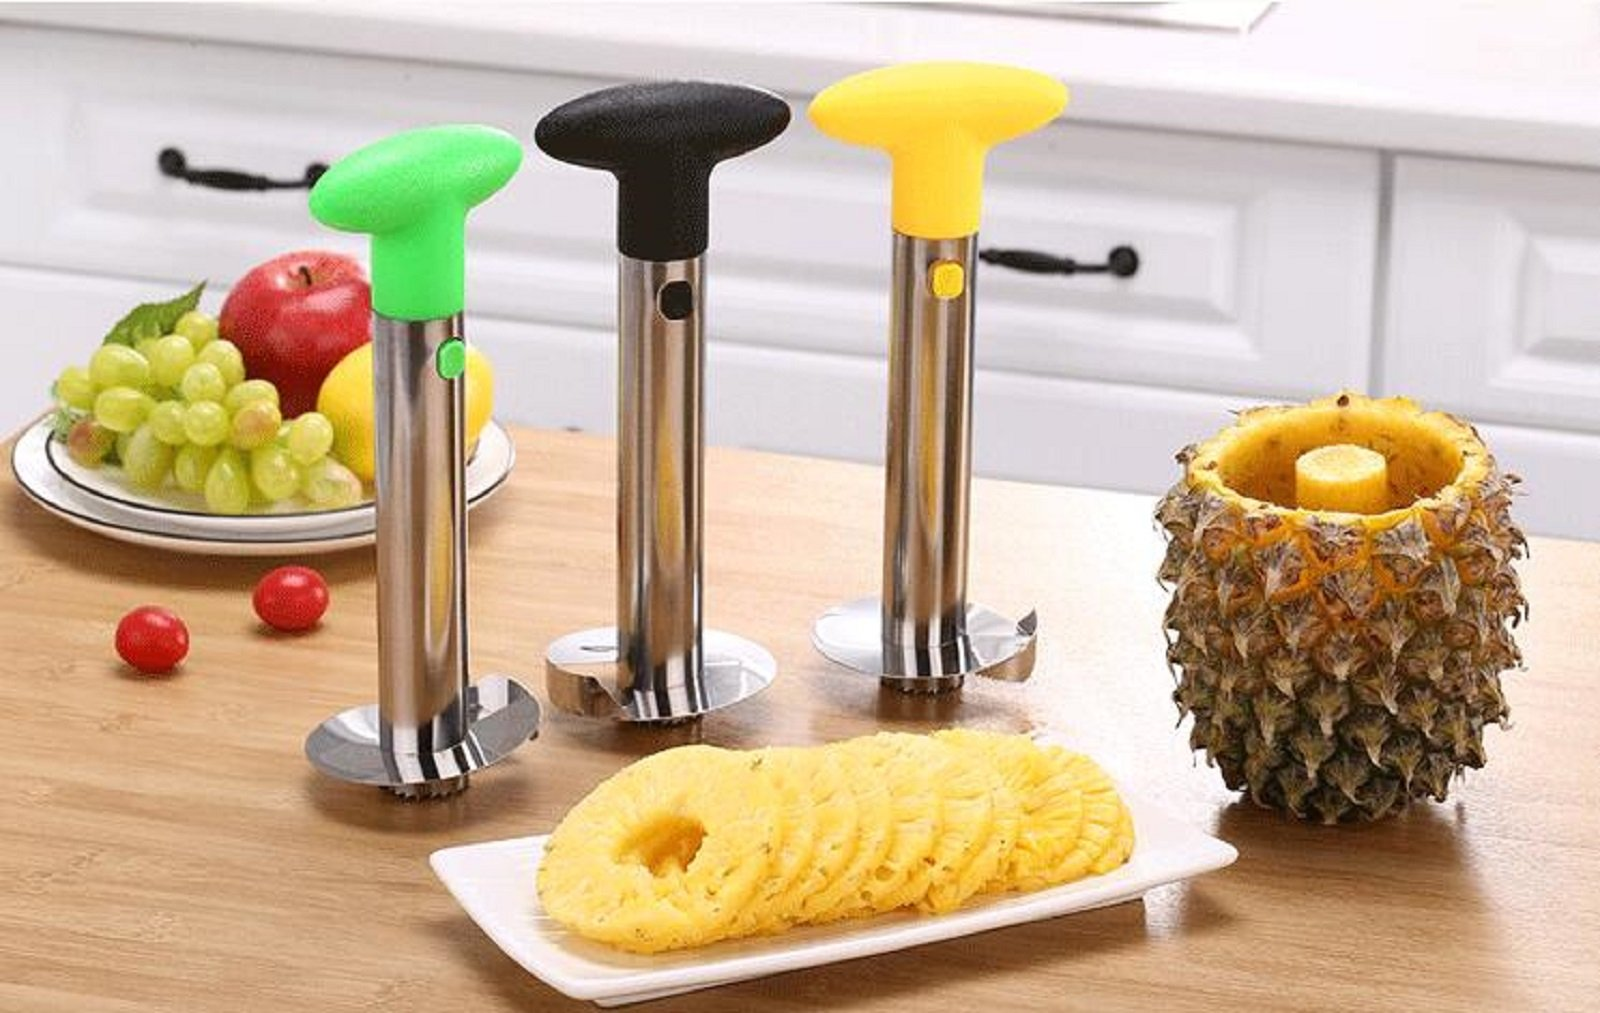 Pineapple Cutter Professional Pineapple Corer Slicer 3-In-1Pineapple Peeler Corer And Spiral Cutter Stainless Steel Frosted De-Corer Peeler,Fast Peels And Slice Fresh Pineapple,Easy & Fun